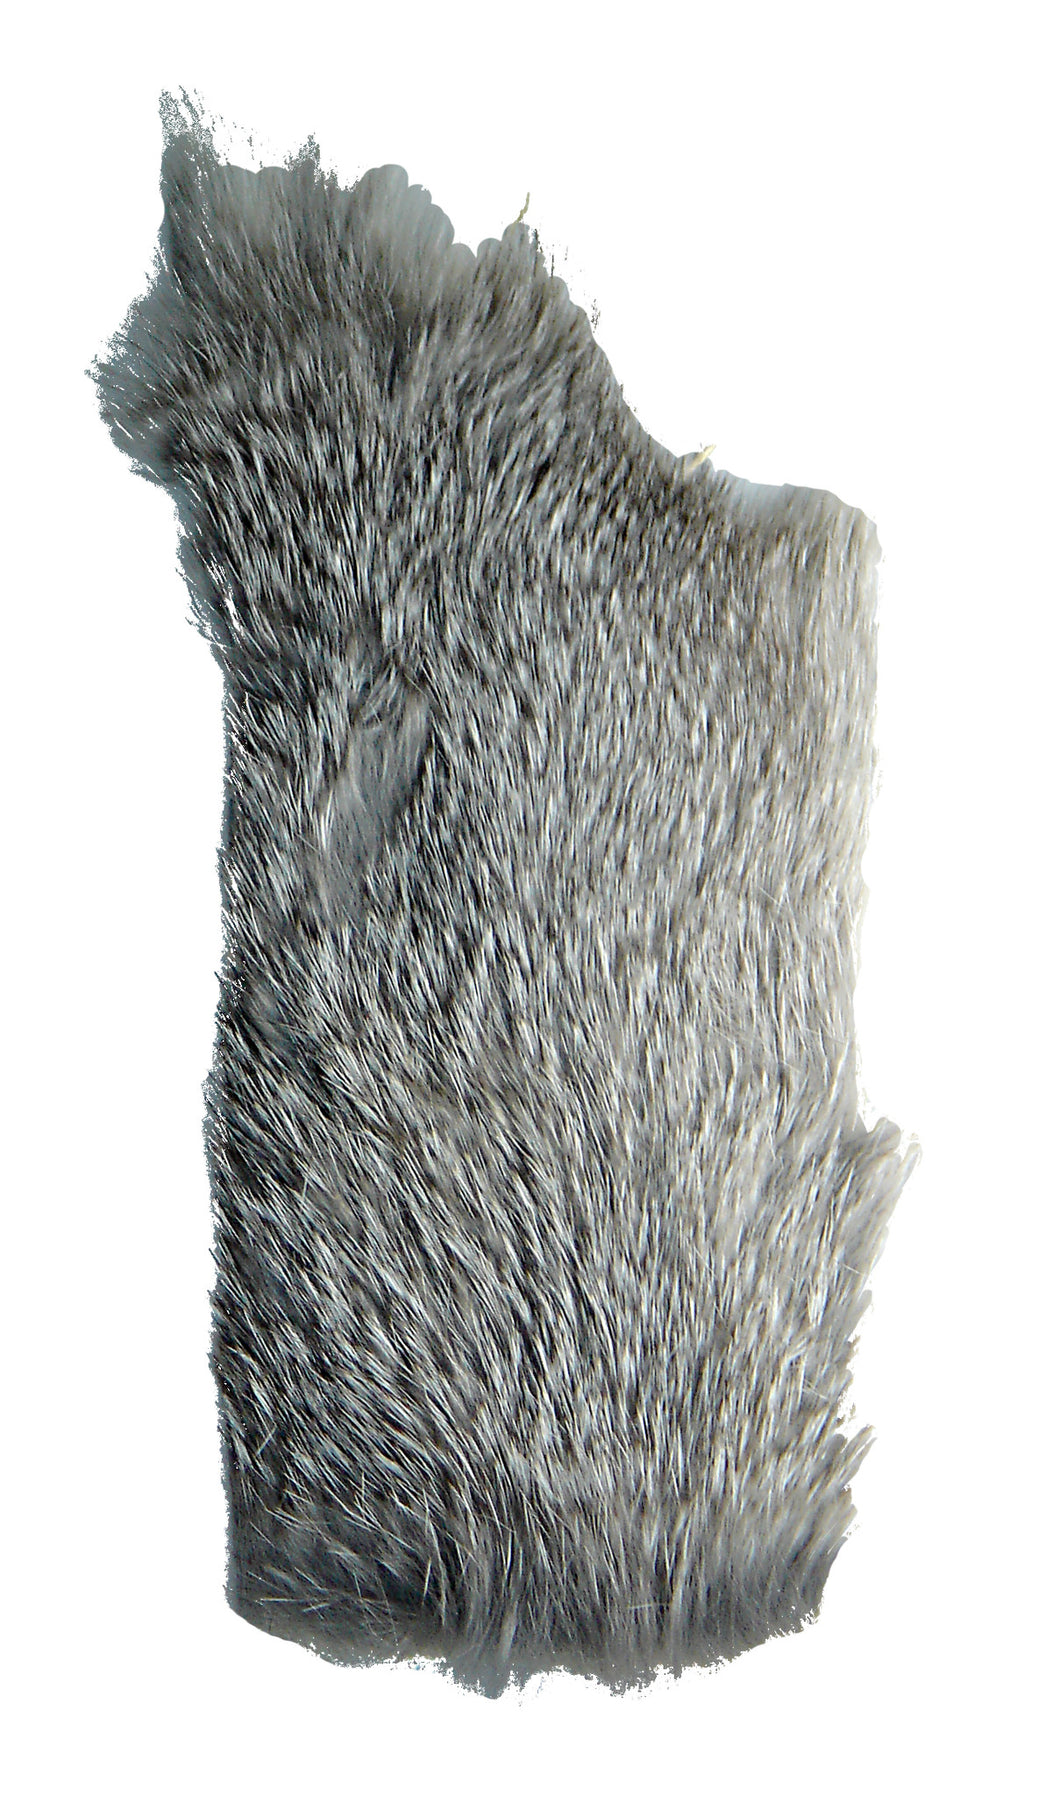 Friction pad, animal fur, 3x5